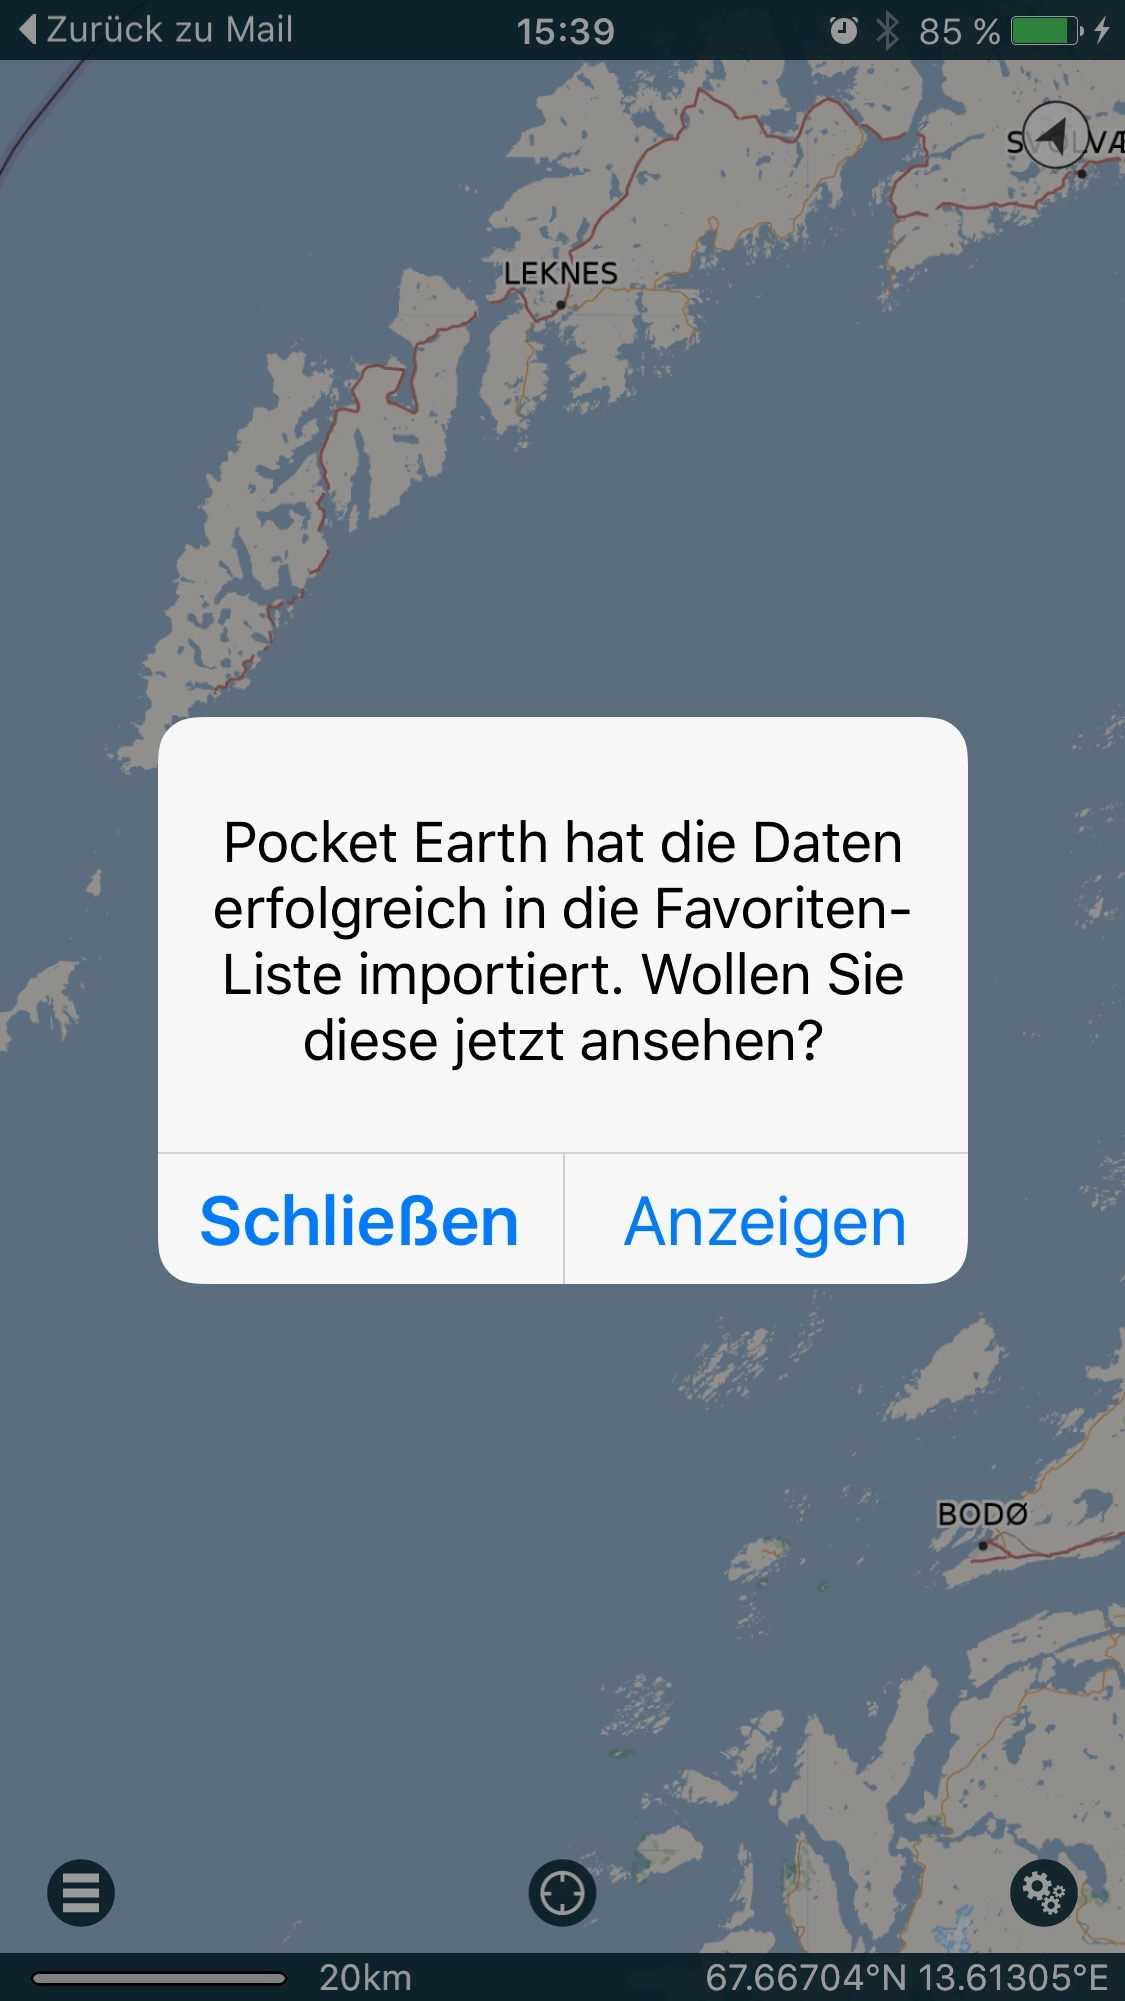 Convert Google-MyMaps-KML-Data-to-Pocket-Earth-GPX-Format-12